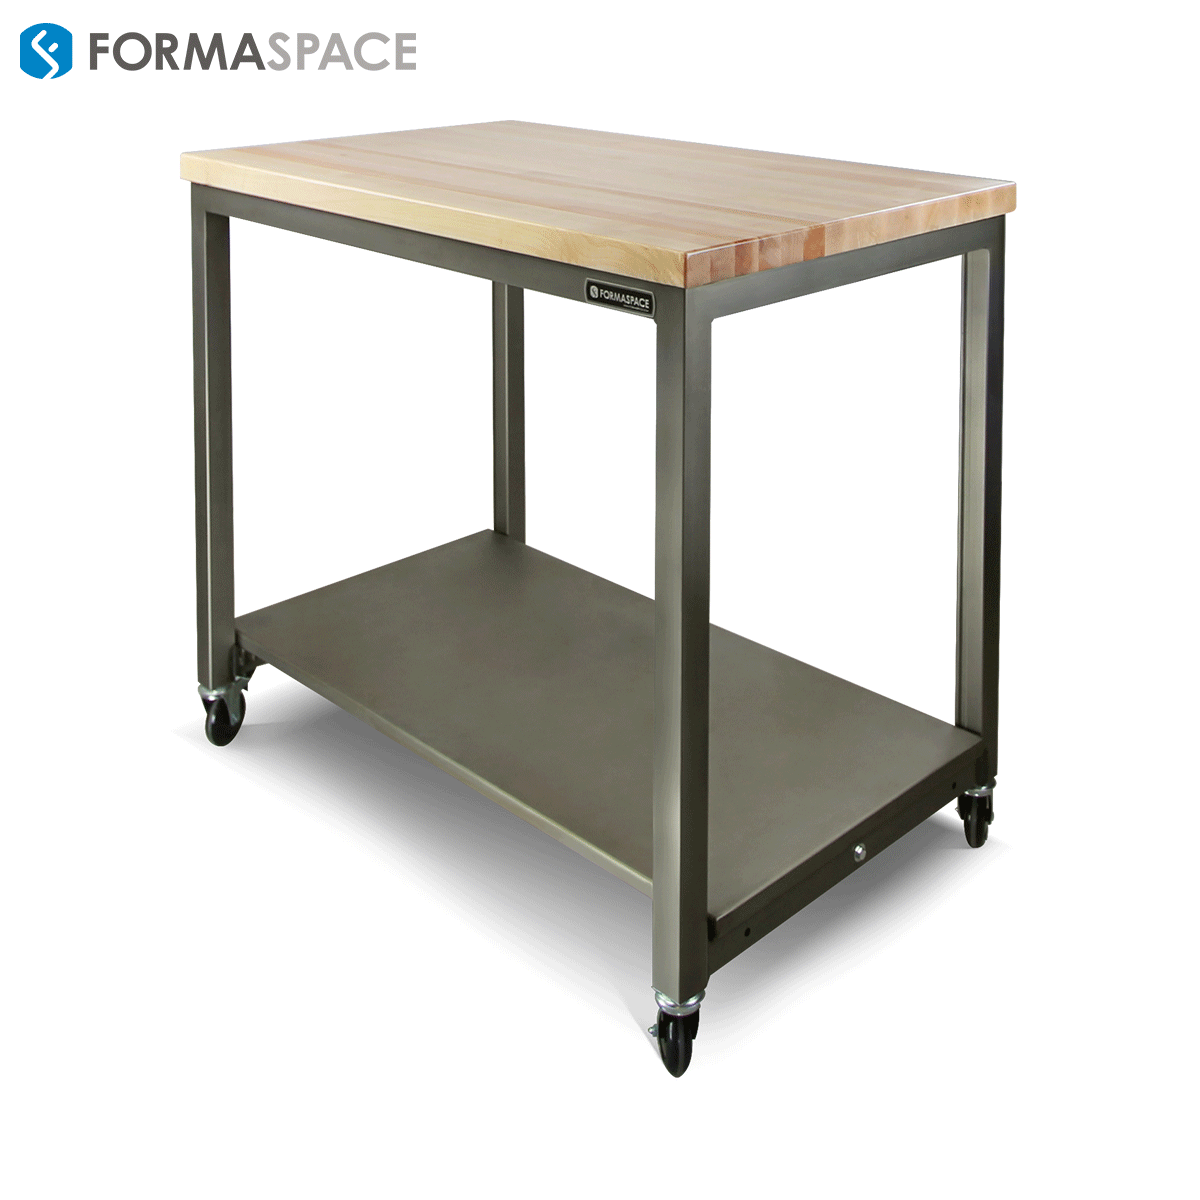 Awesome Basix With Steel Lower Shelf Formaspace This Standard Machost Co Dining Chair Design Ideas Machostcouk